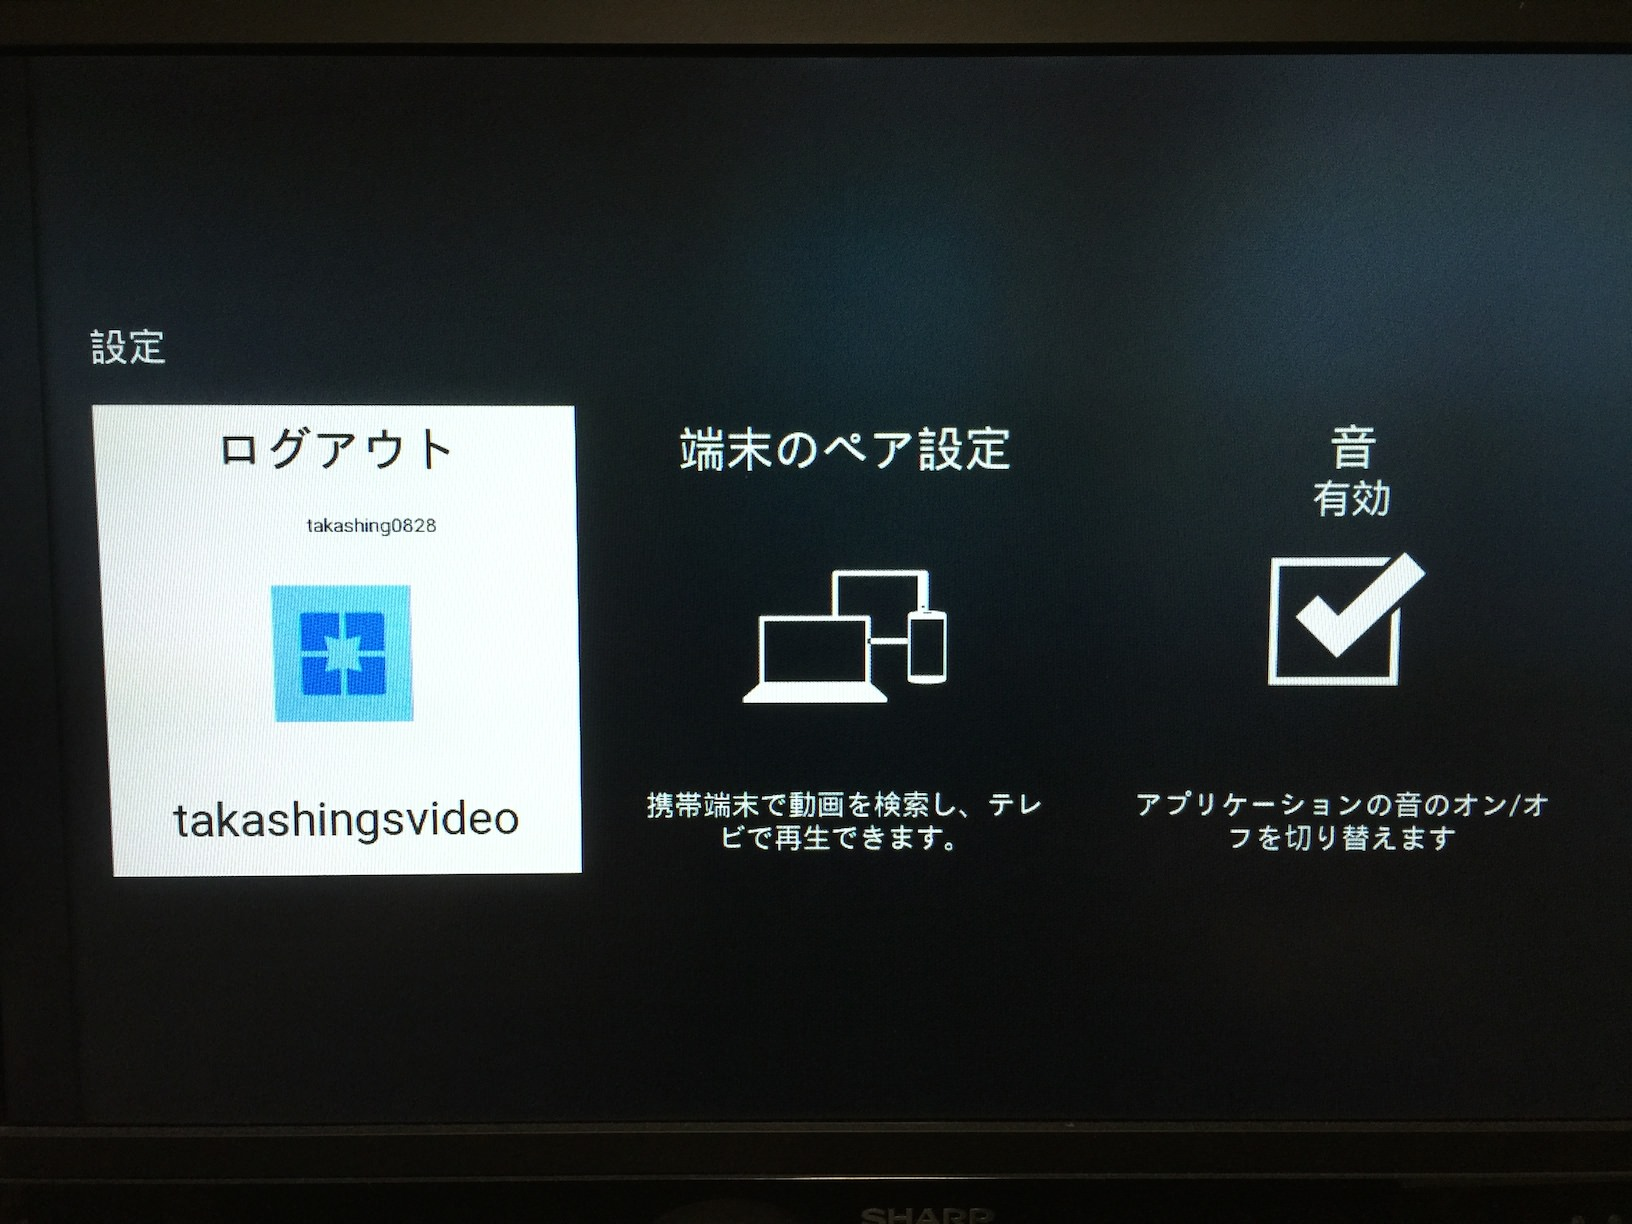 Recommend pair setting of youtube for ps4 03